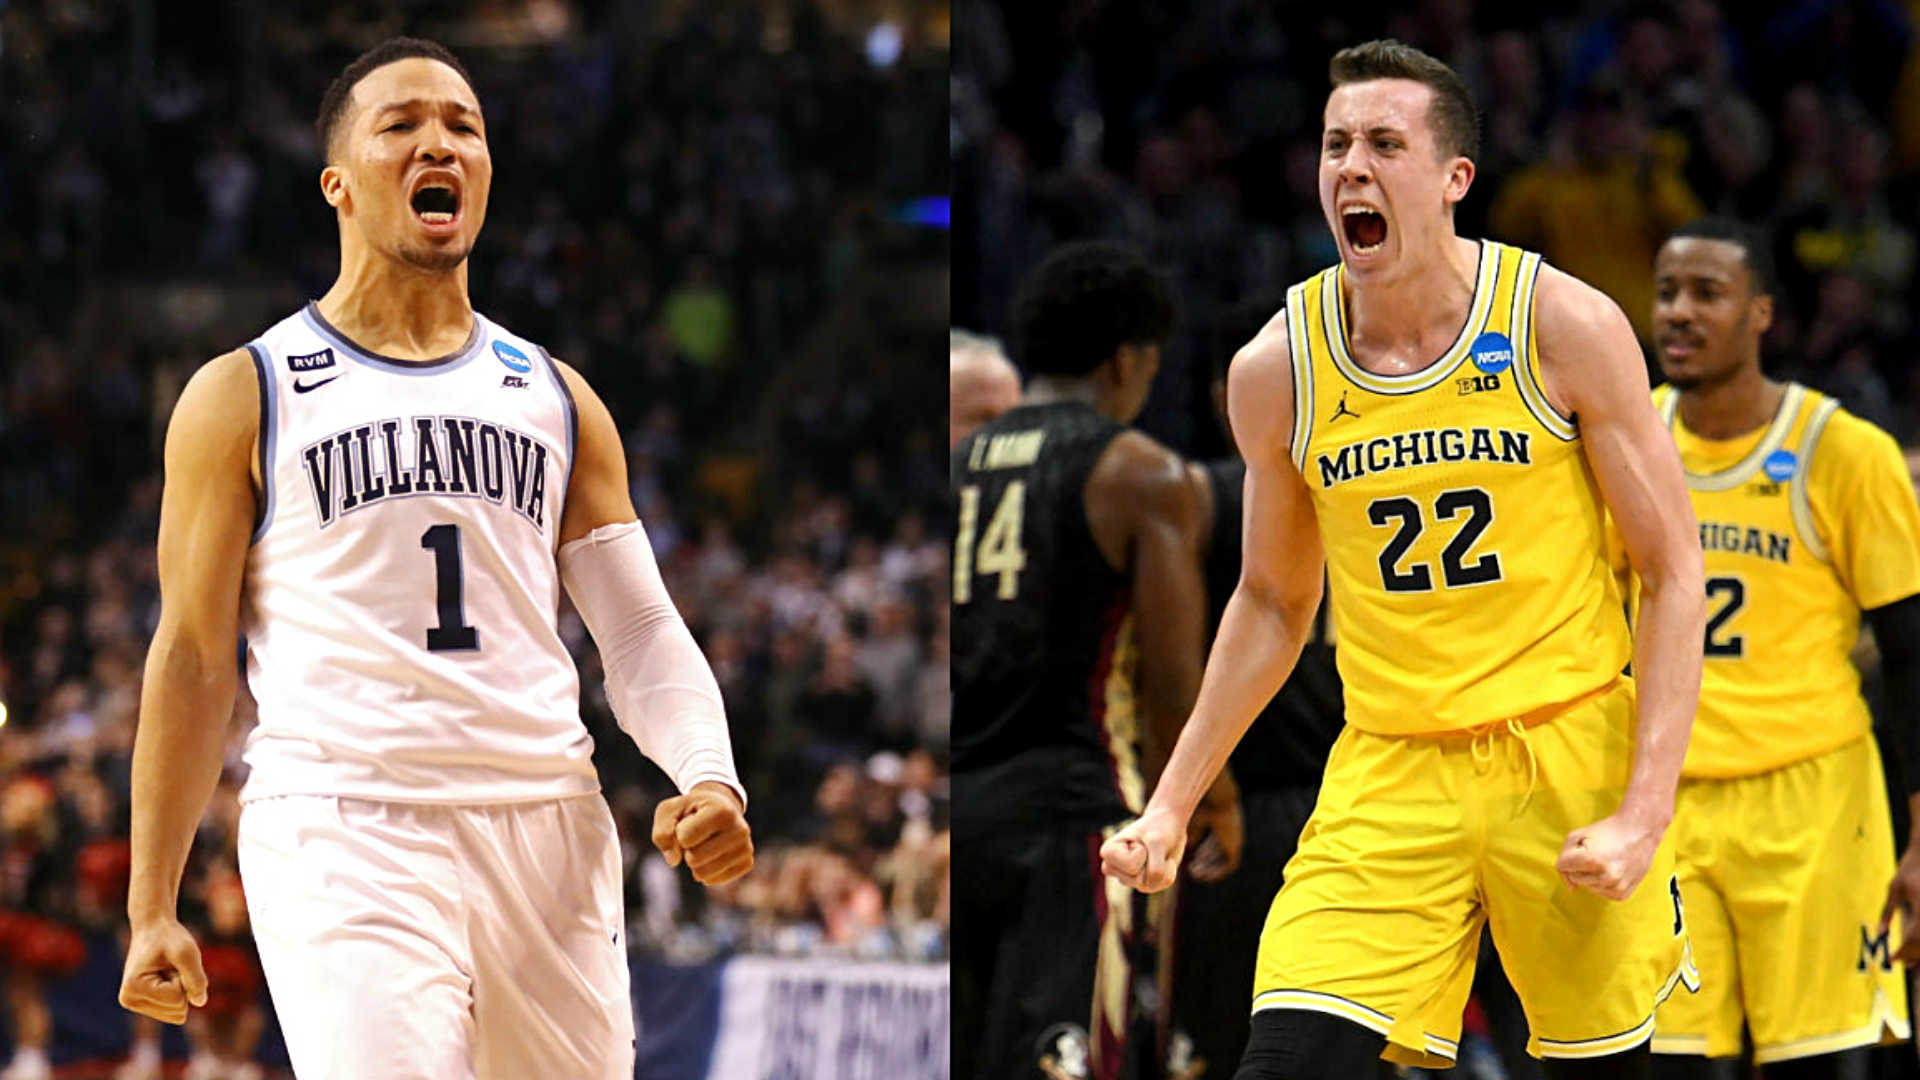 Villanova Basketball: DiVincenzo's heroics spell title for Wildcats